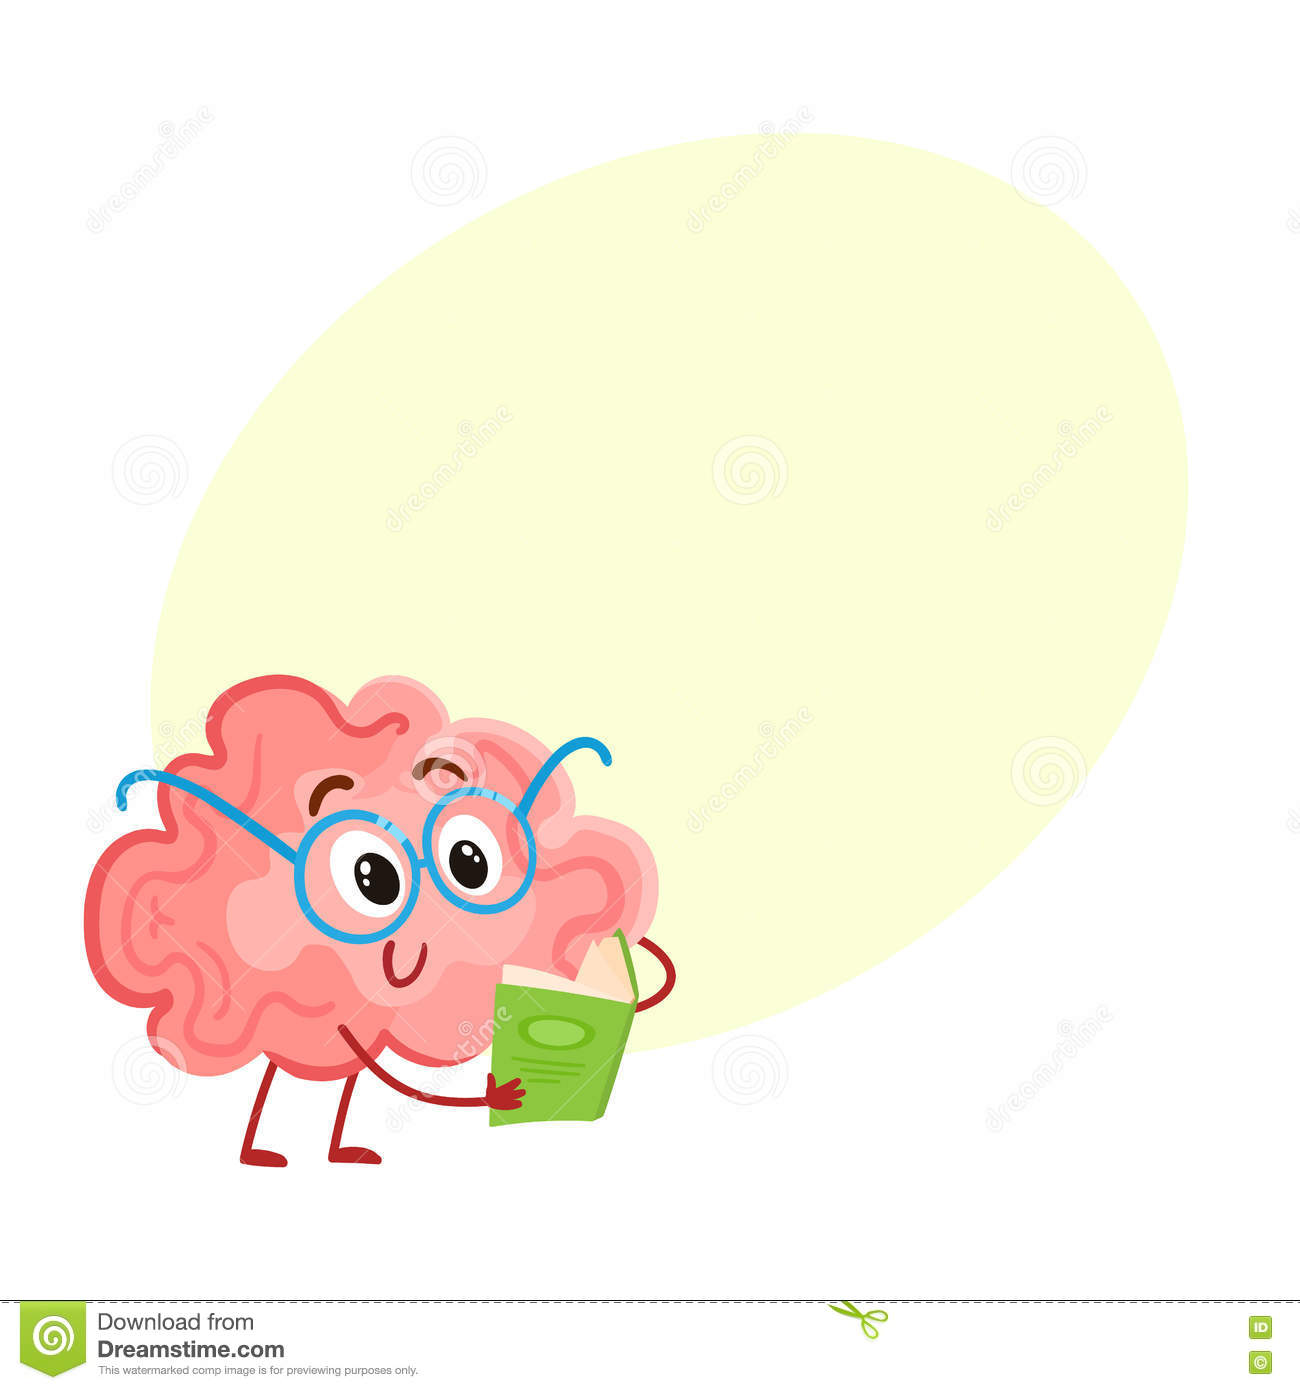 Funny smiling brain in round glasses reading a book